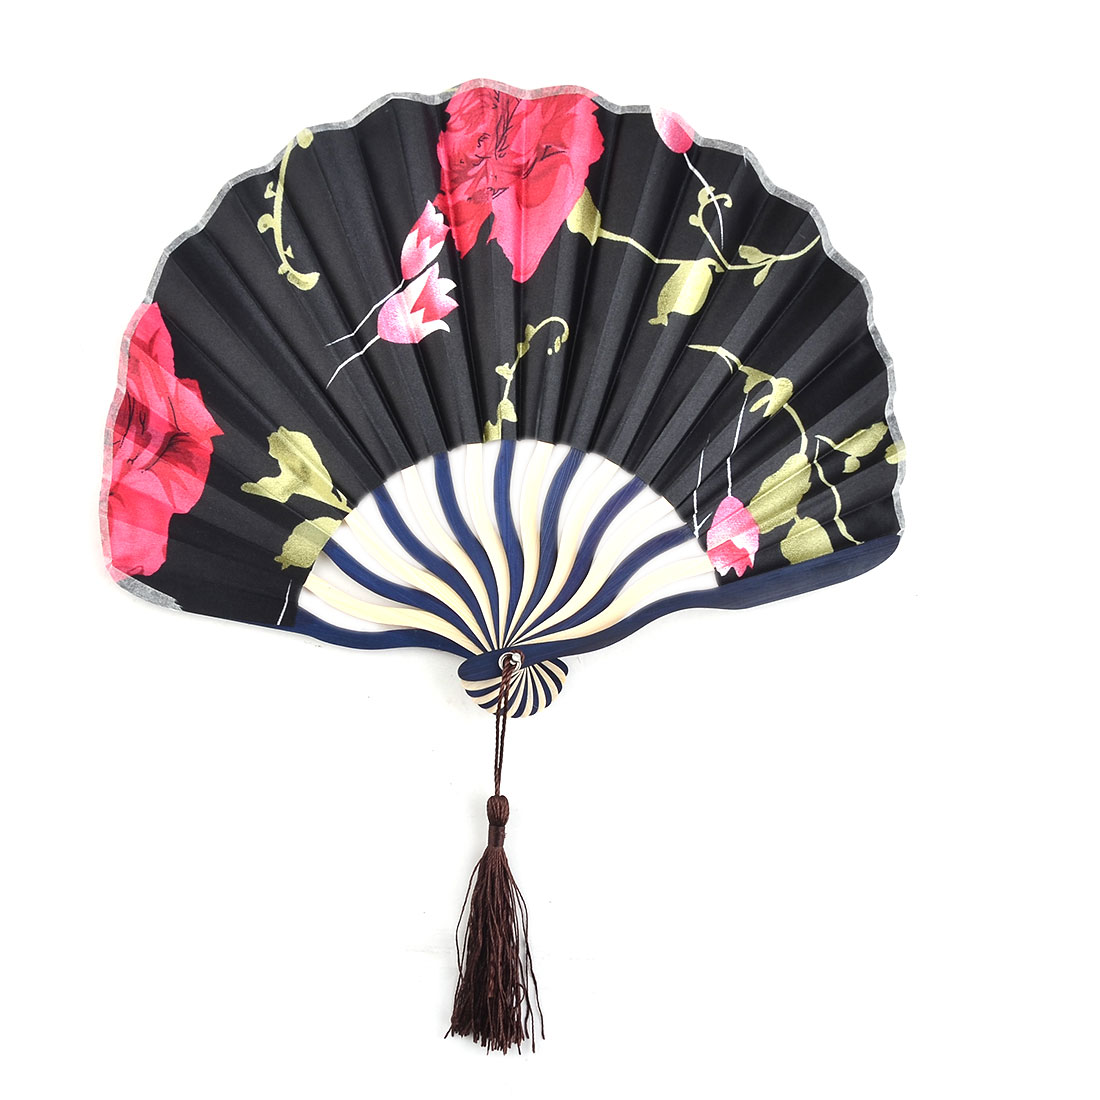 Dorm Wall Decor Polyester Floral Print Tassel Handmade Handheld Cooling Hand Fan Black